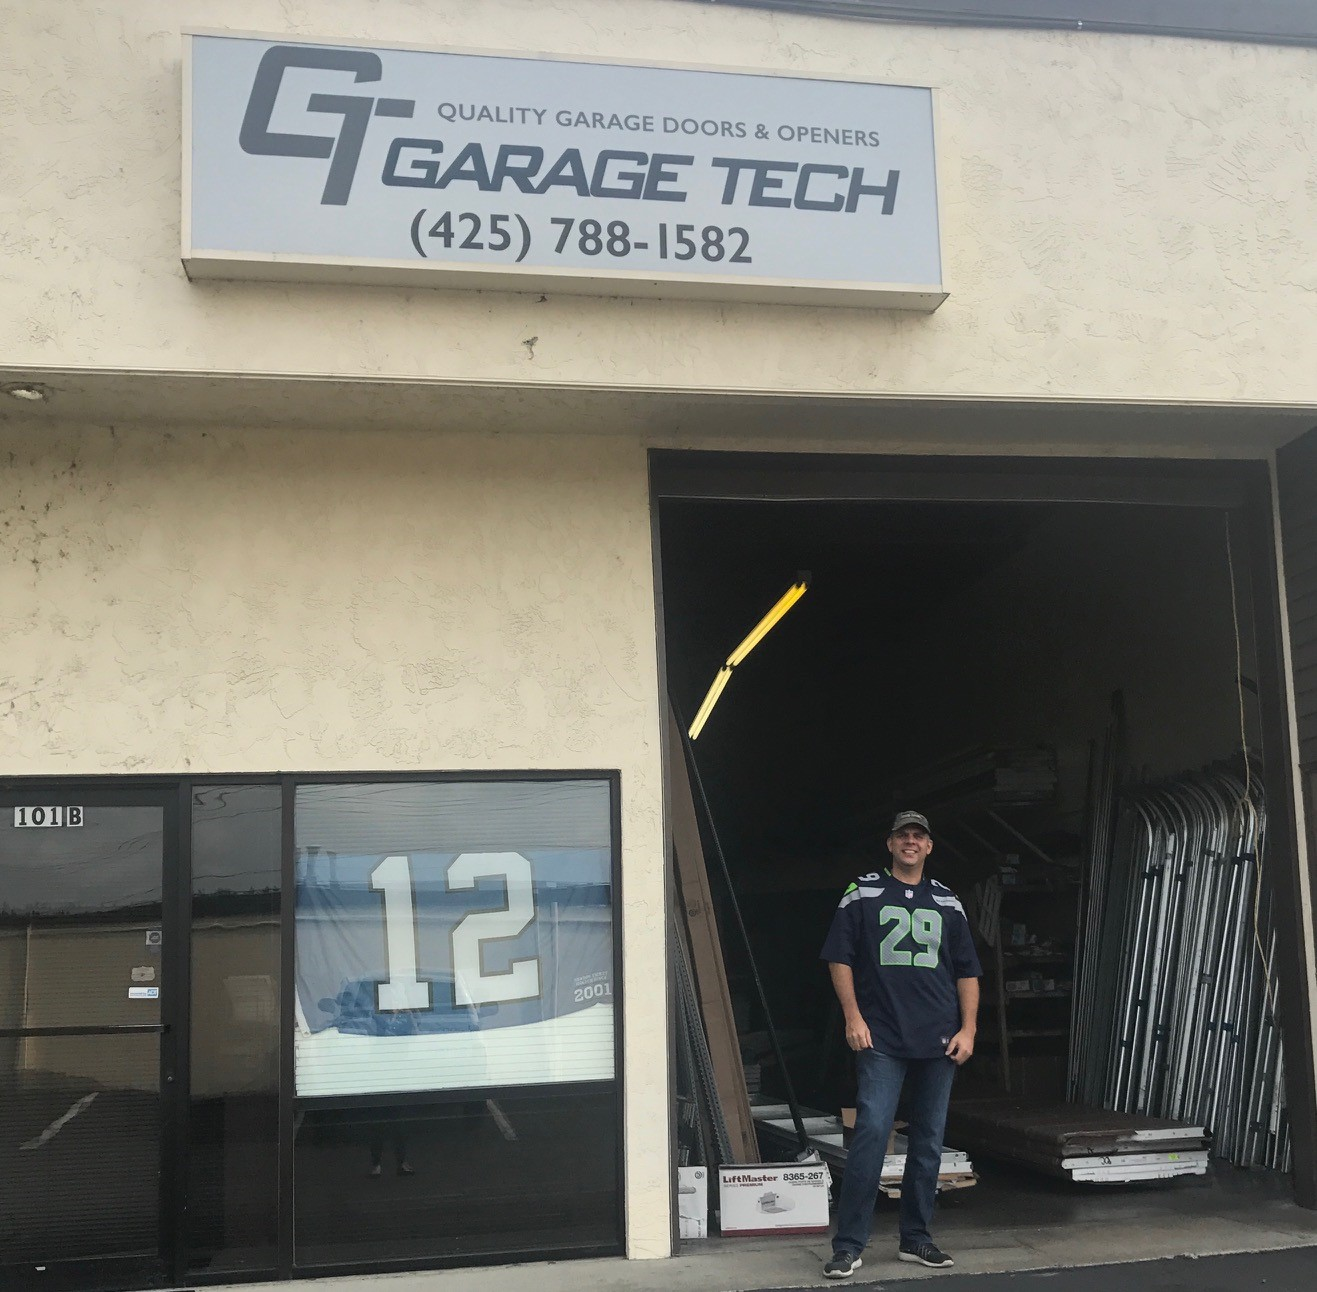 Garage Door Parts Seattle Garage Door Repair Bothell Woodinville Monroe Garage Tech